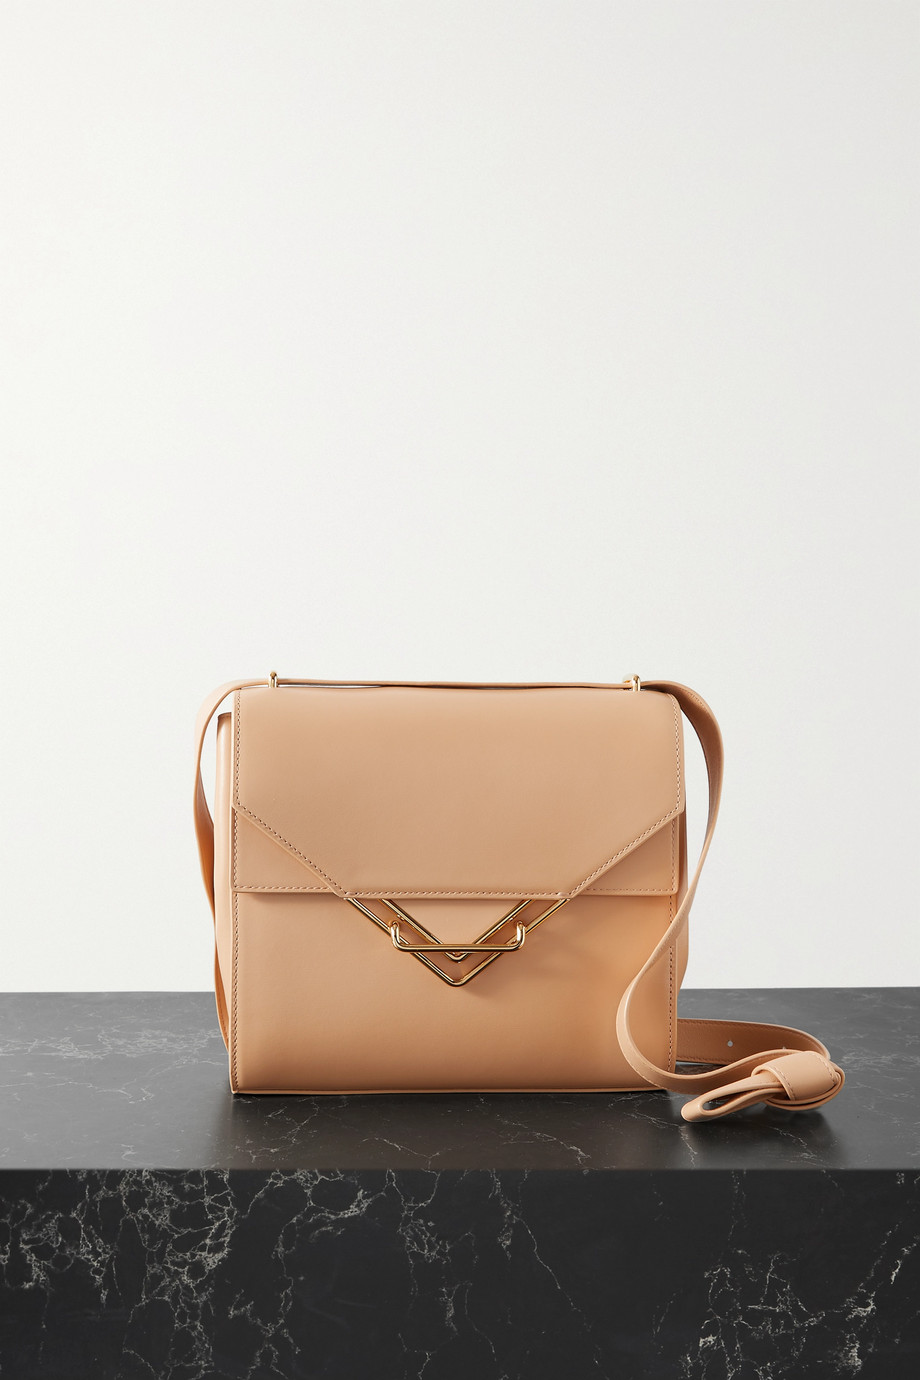 BOTTEGA VENETA The Clip small leather shoulder bag